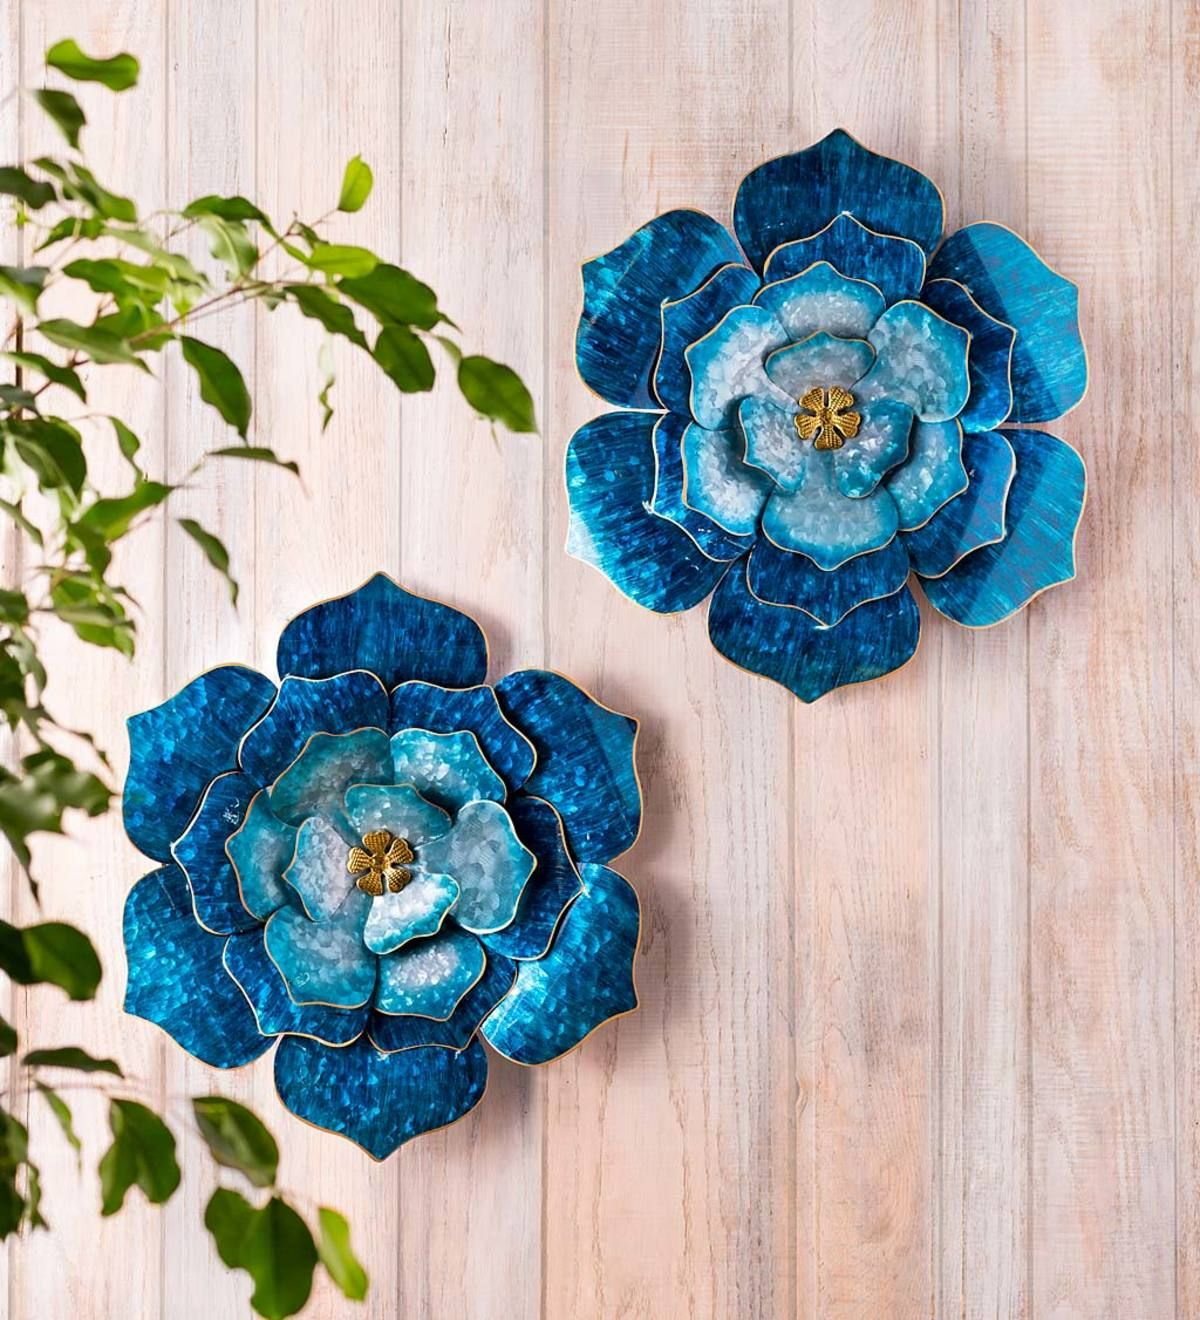 Our Handcrafted Blue Metal Flower Wall Art Adds A Splash Of Color To Any Indoor Or Outdoor Wall Or Eve Metal Flower Wall Decor Metal Flowers Flower Wall Decor